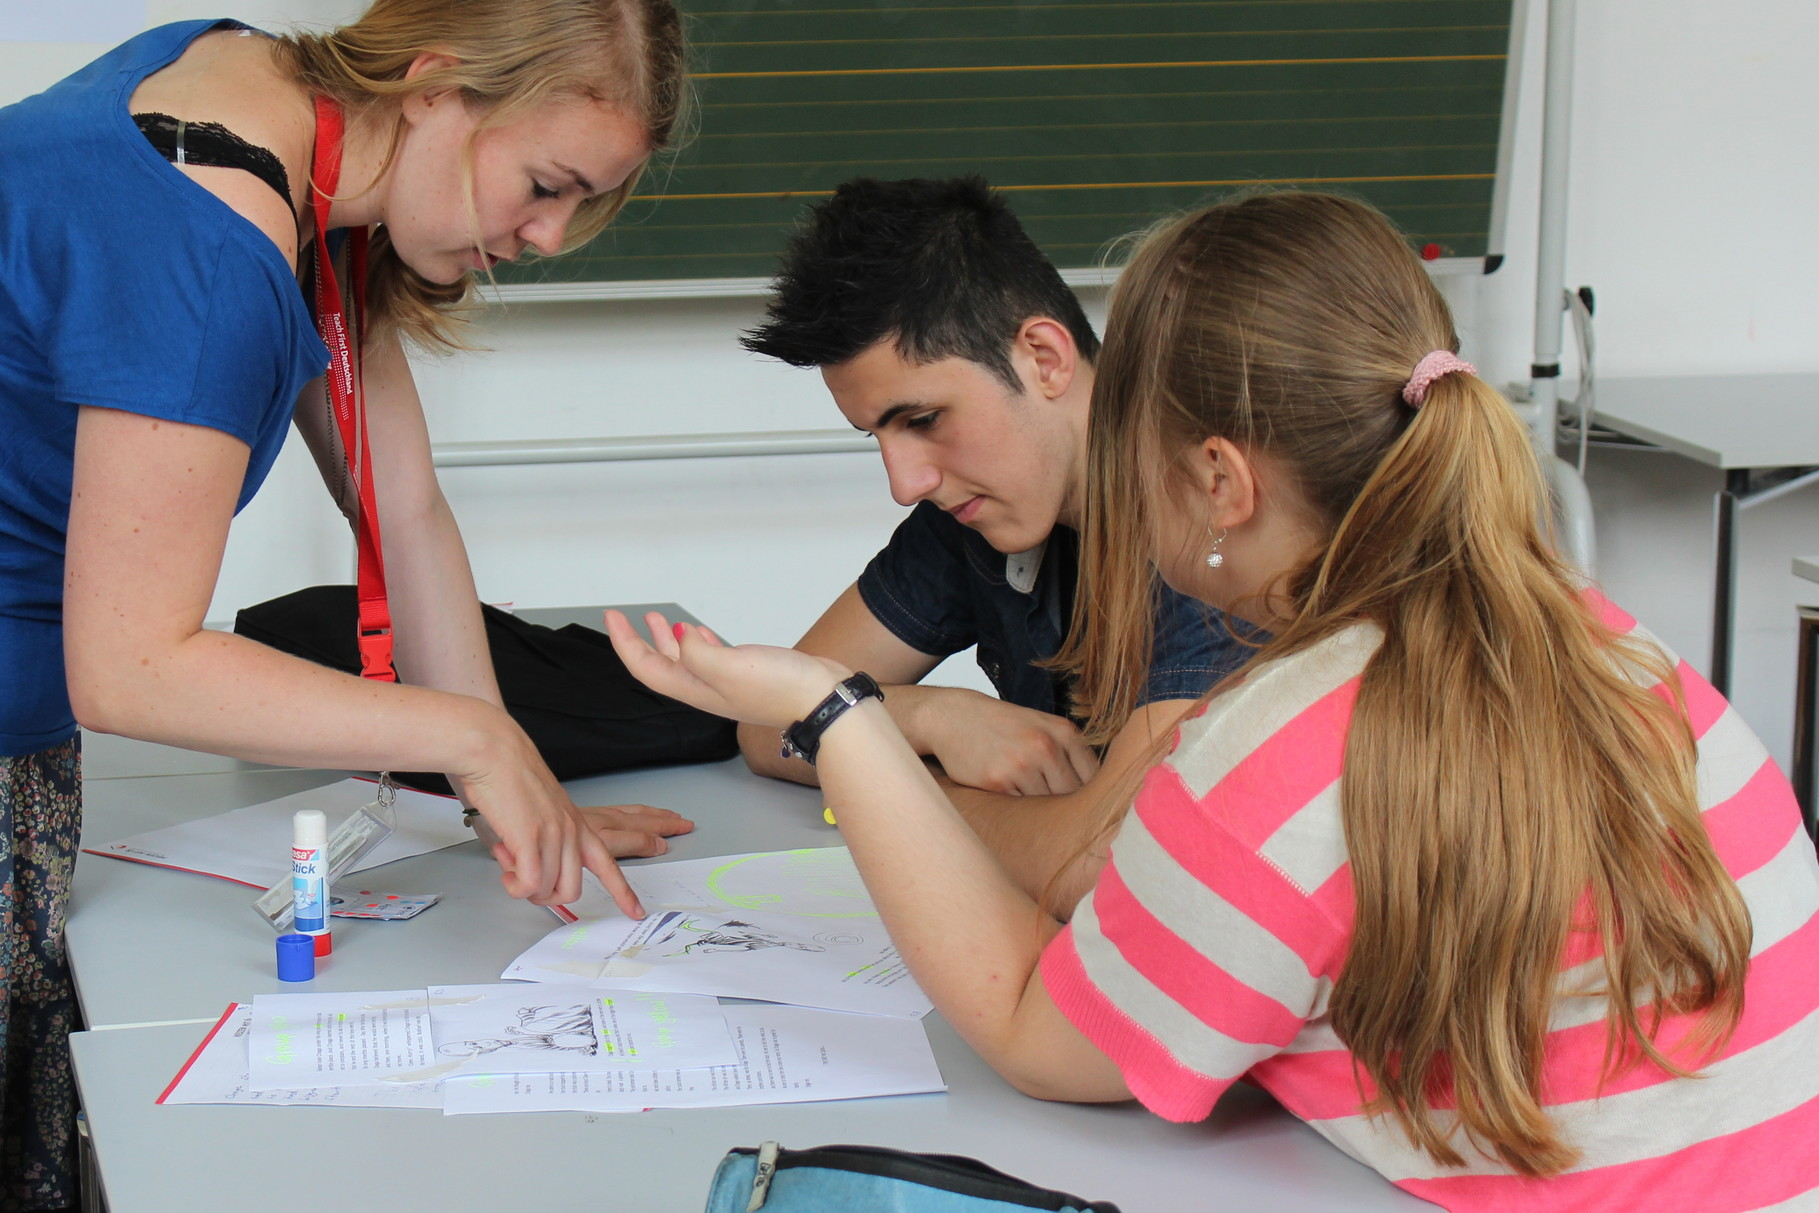 Discovery Summer Camp: Englisch-Lernferien in Kooperation mit der Bucerius Law School